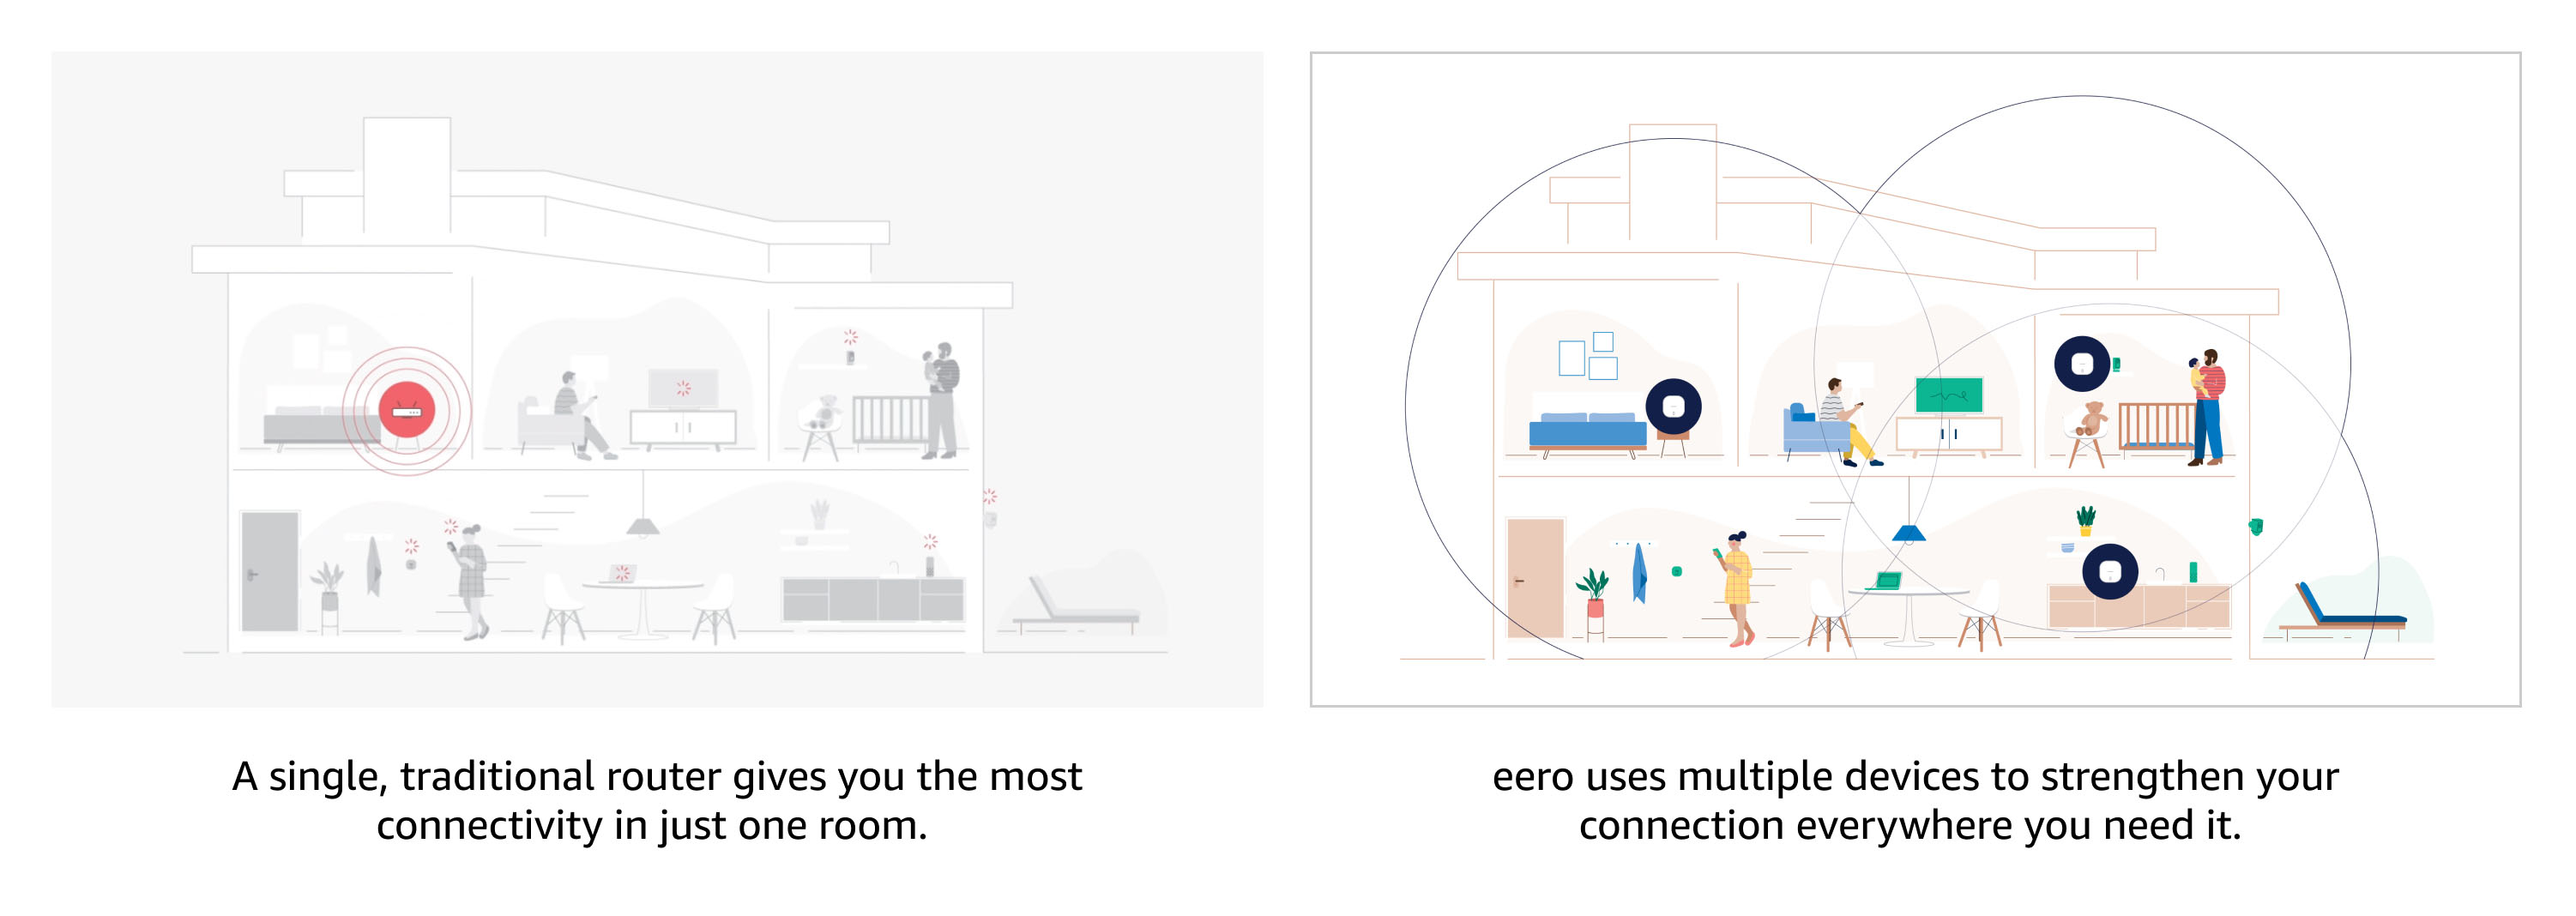 A single, traditional router gives you the most connectivity in just one room.